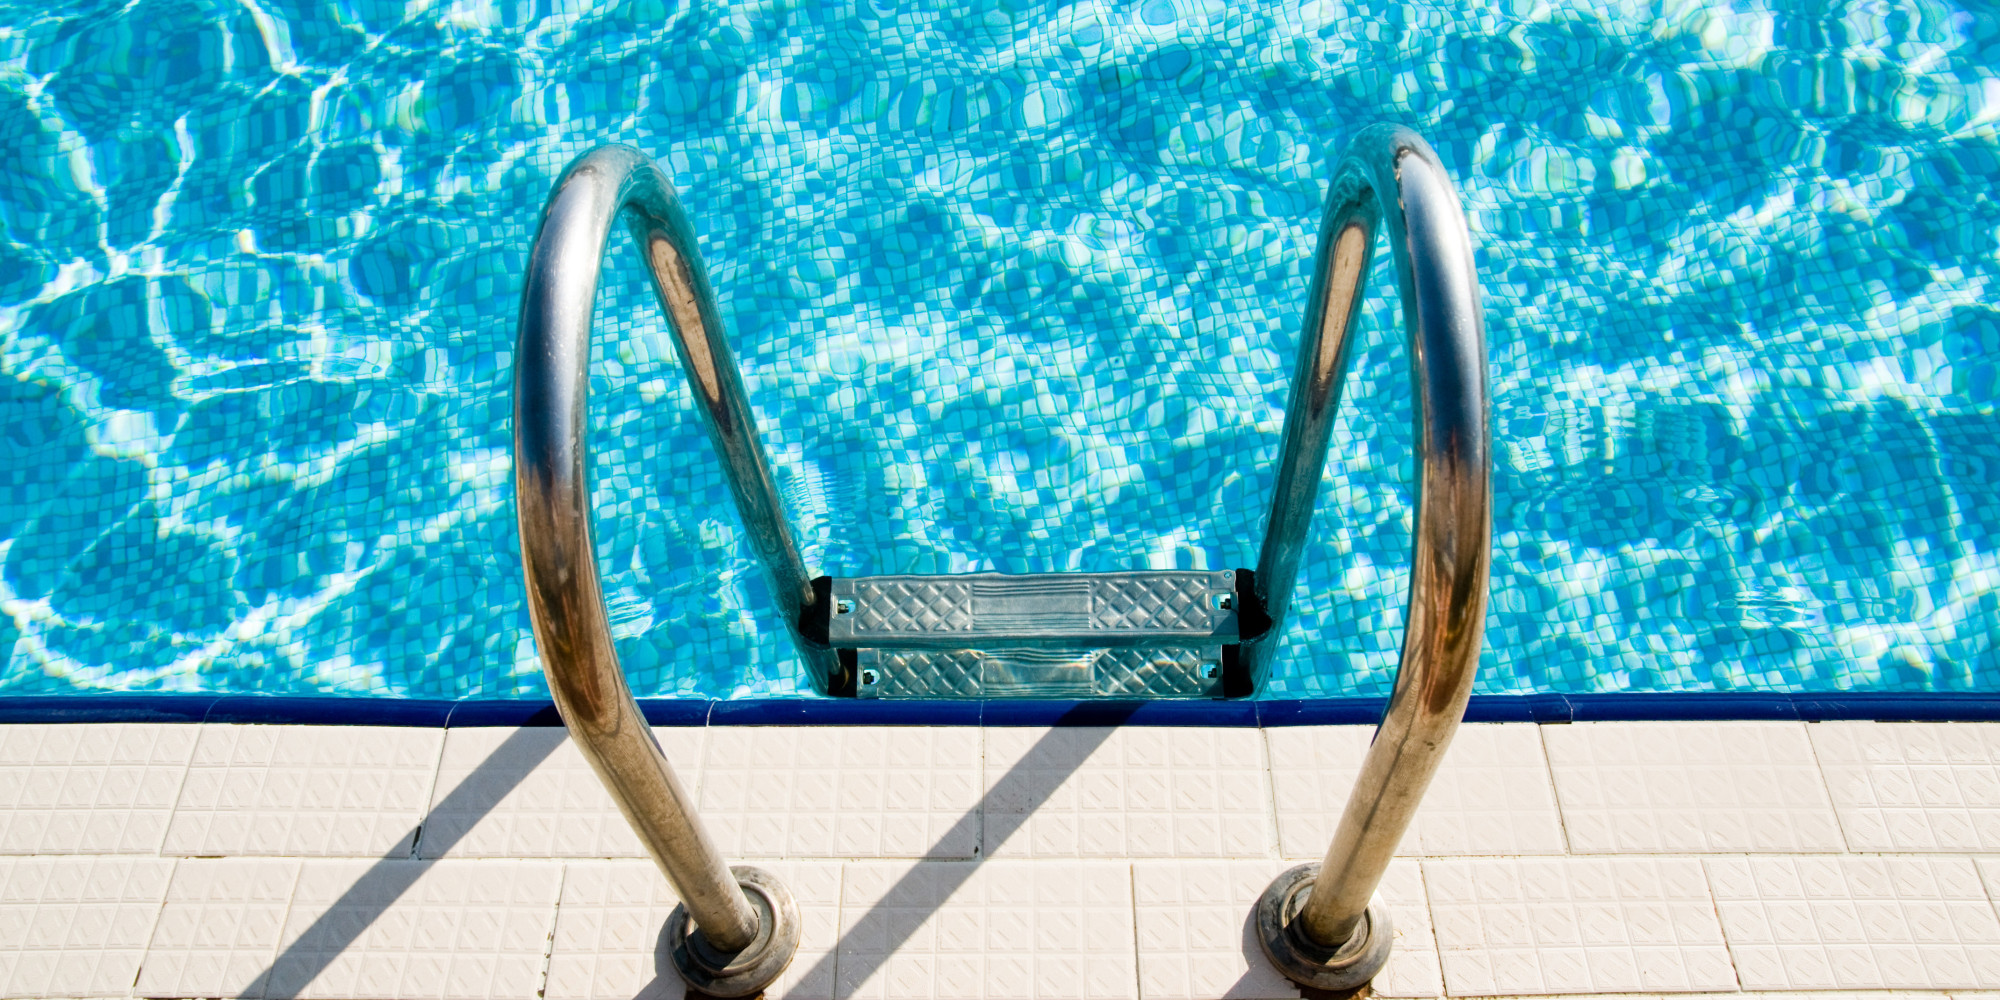 Swimming pools ban extended breath holding in wake of - How long after pool shock before swim ...